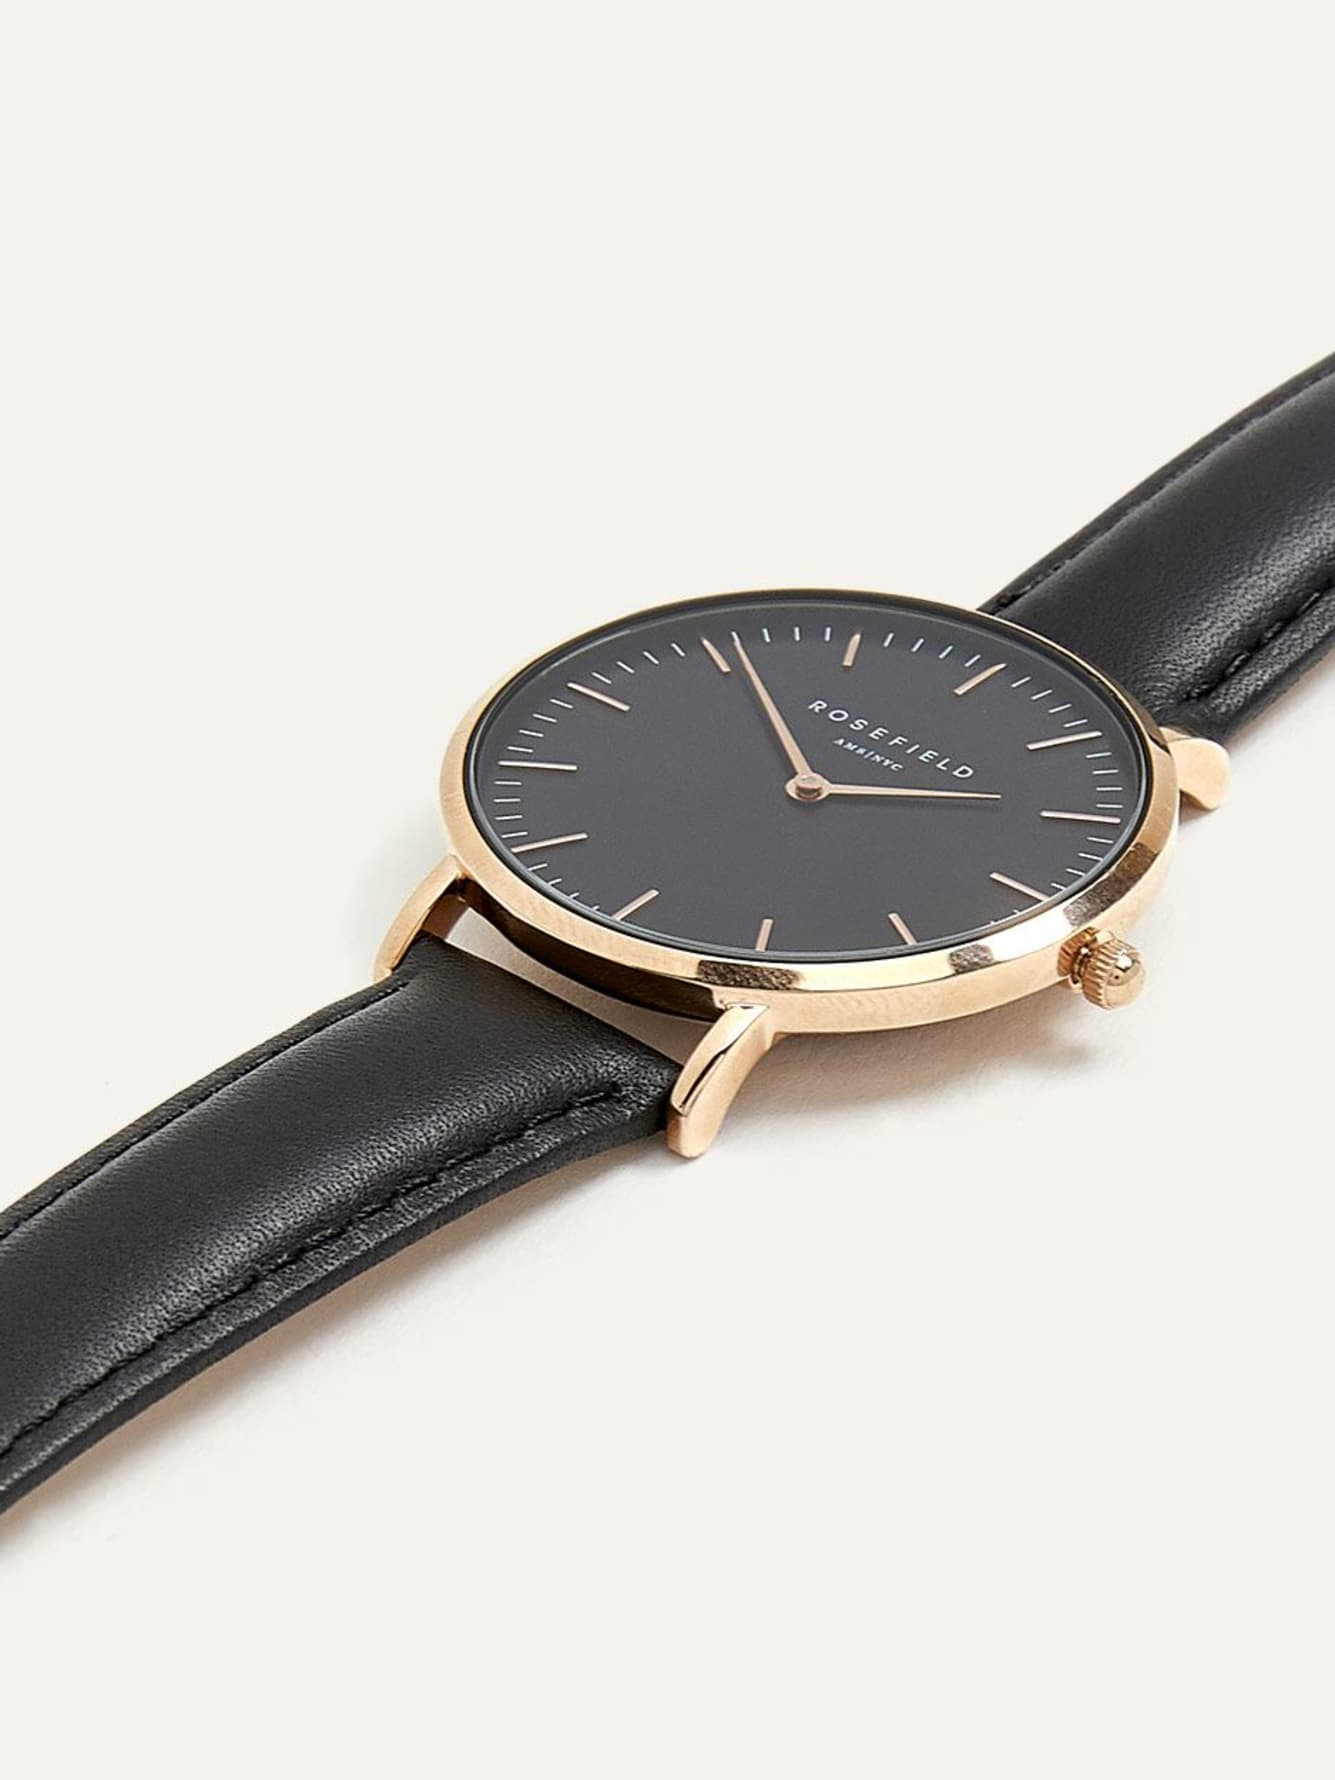 The Bowery Watch - Rosefield